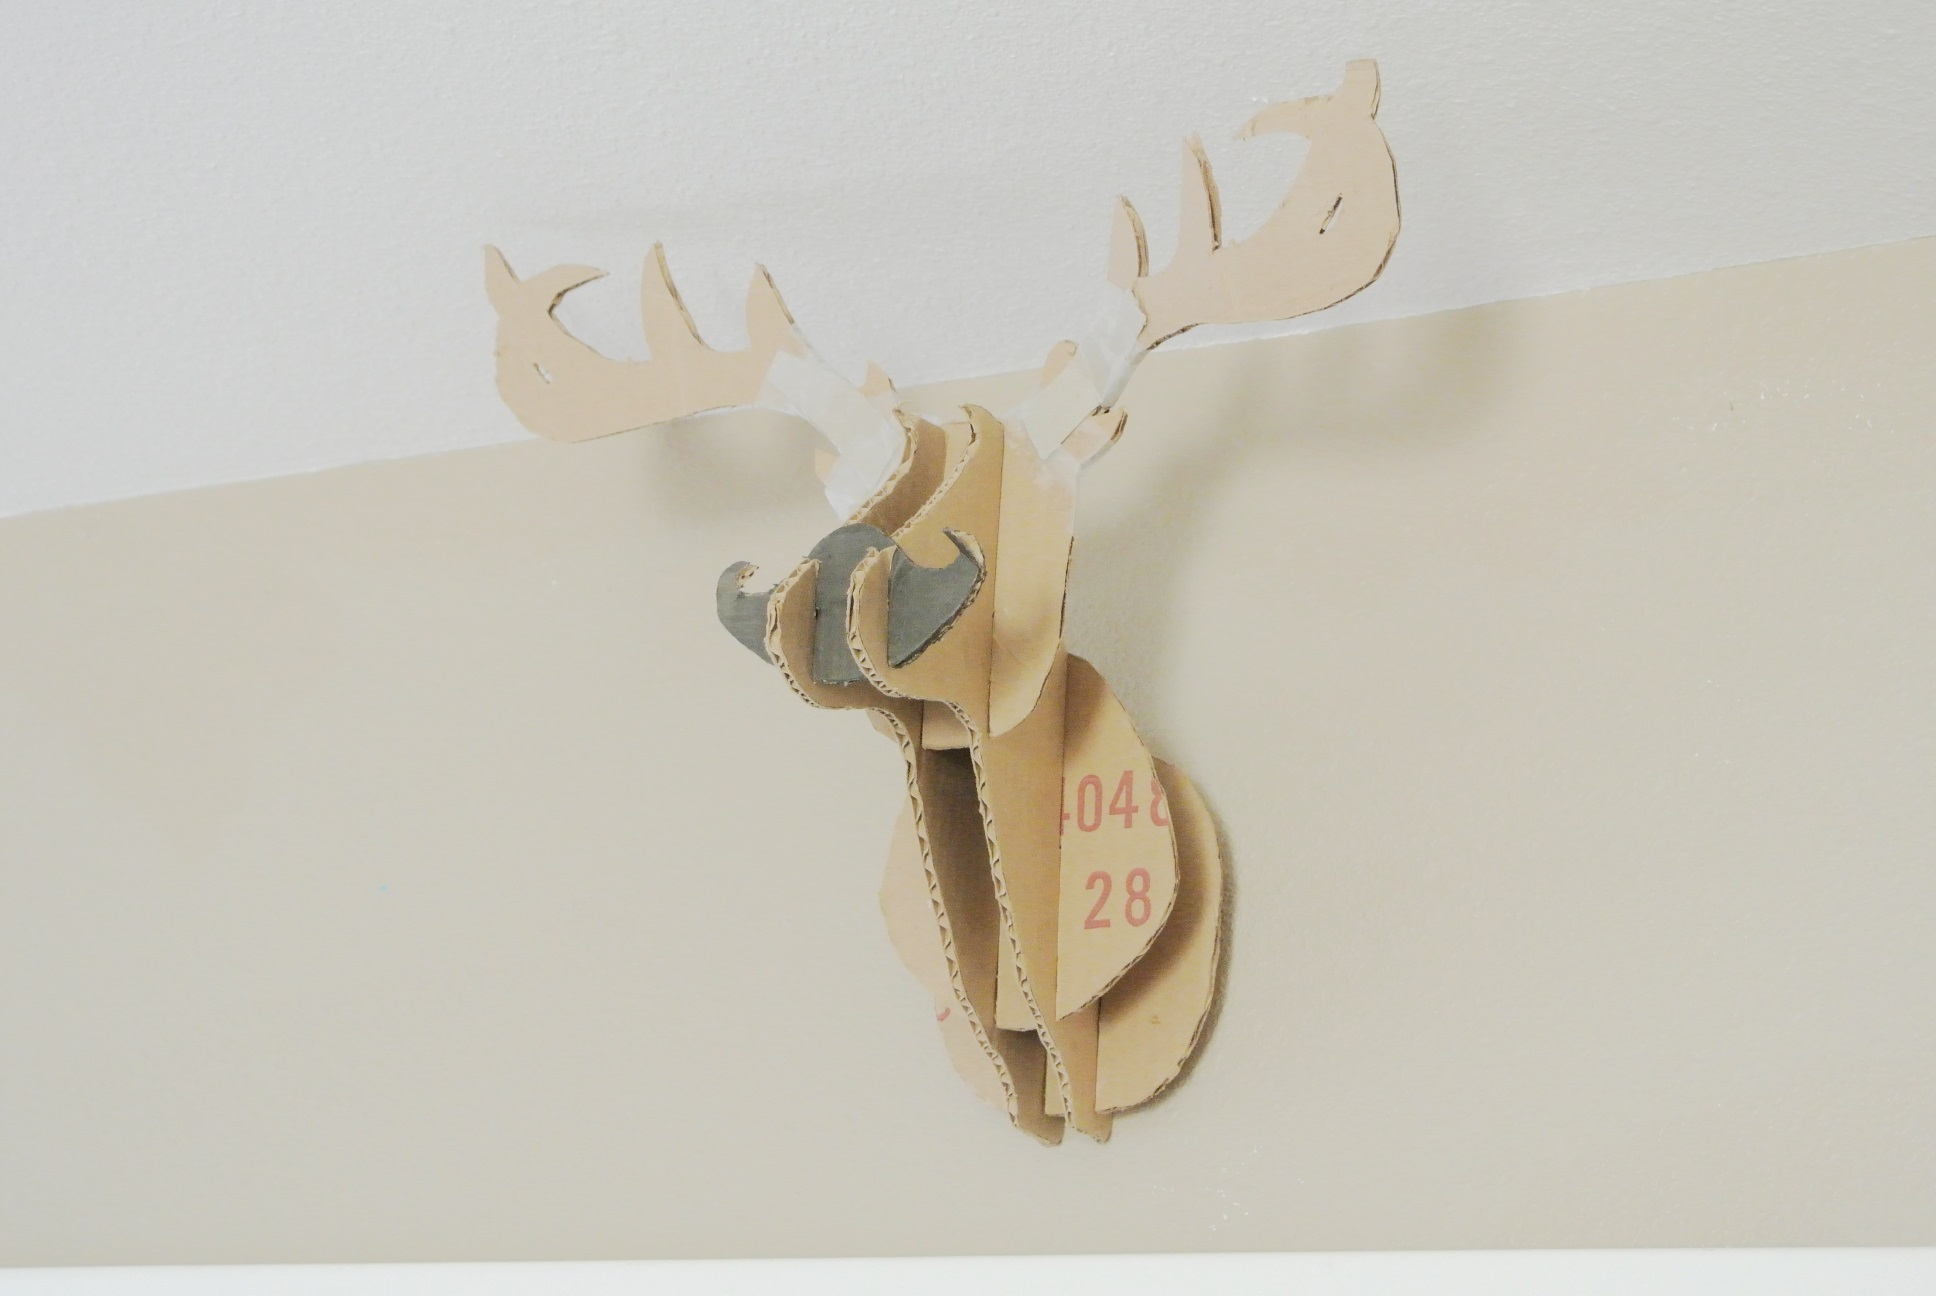 Diy room hacks for the young poor and creative huffpost - Cardboard moosehead ...